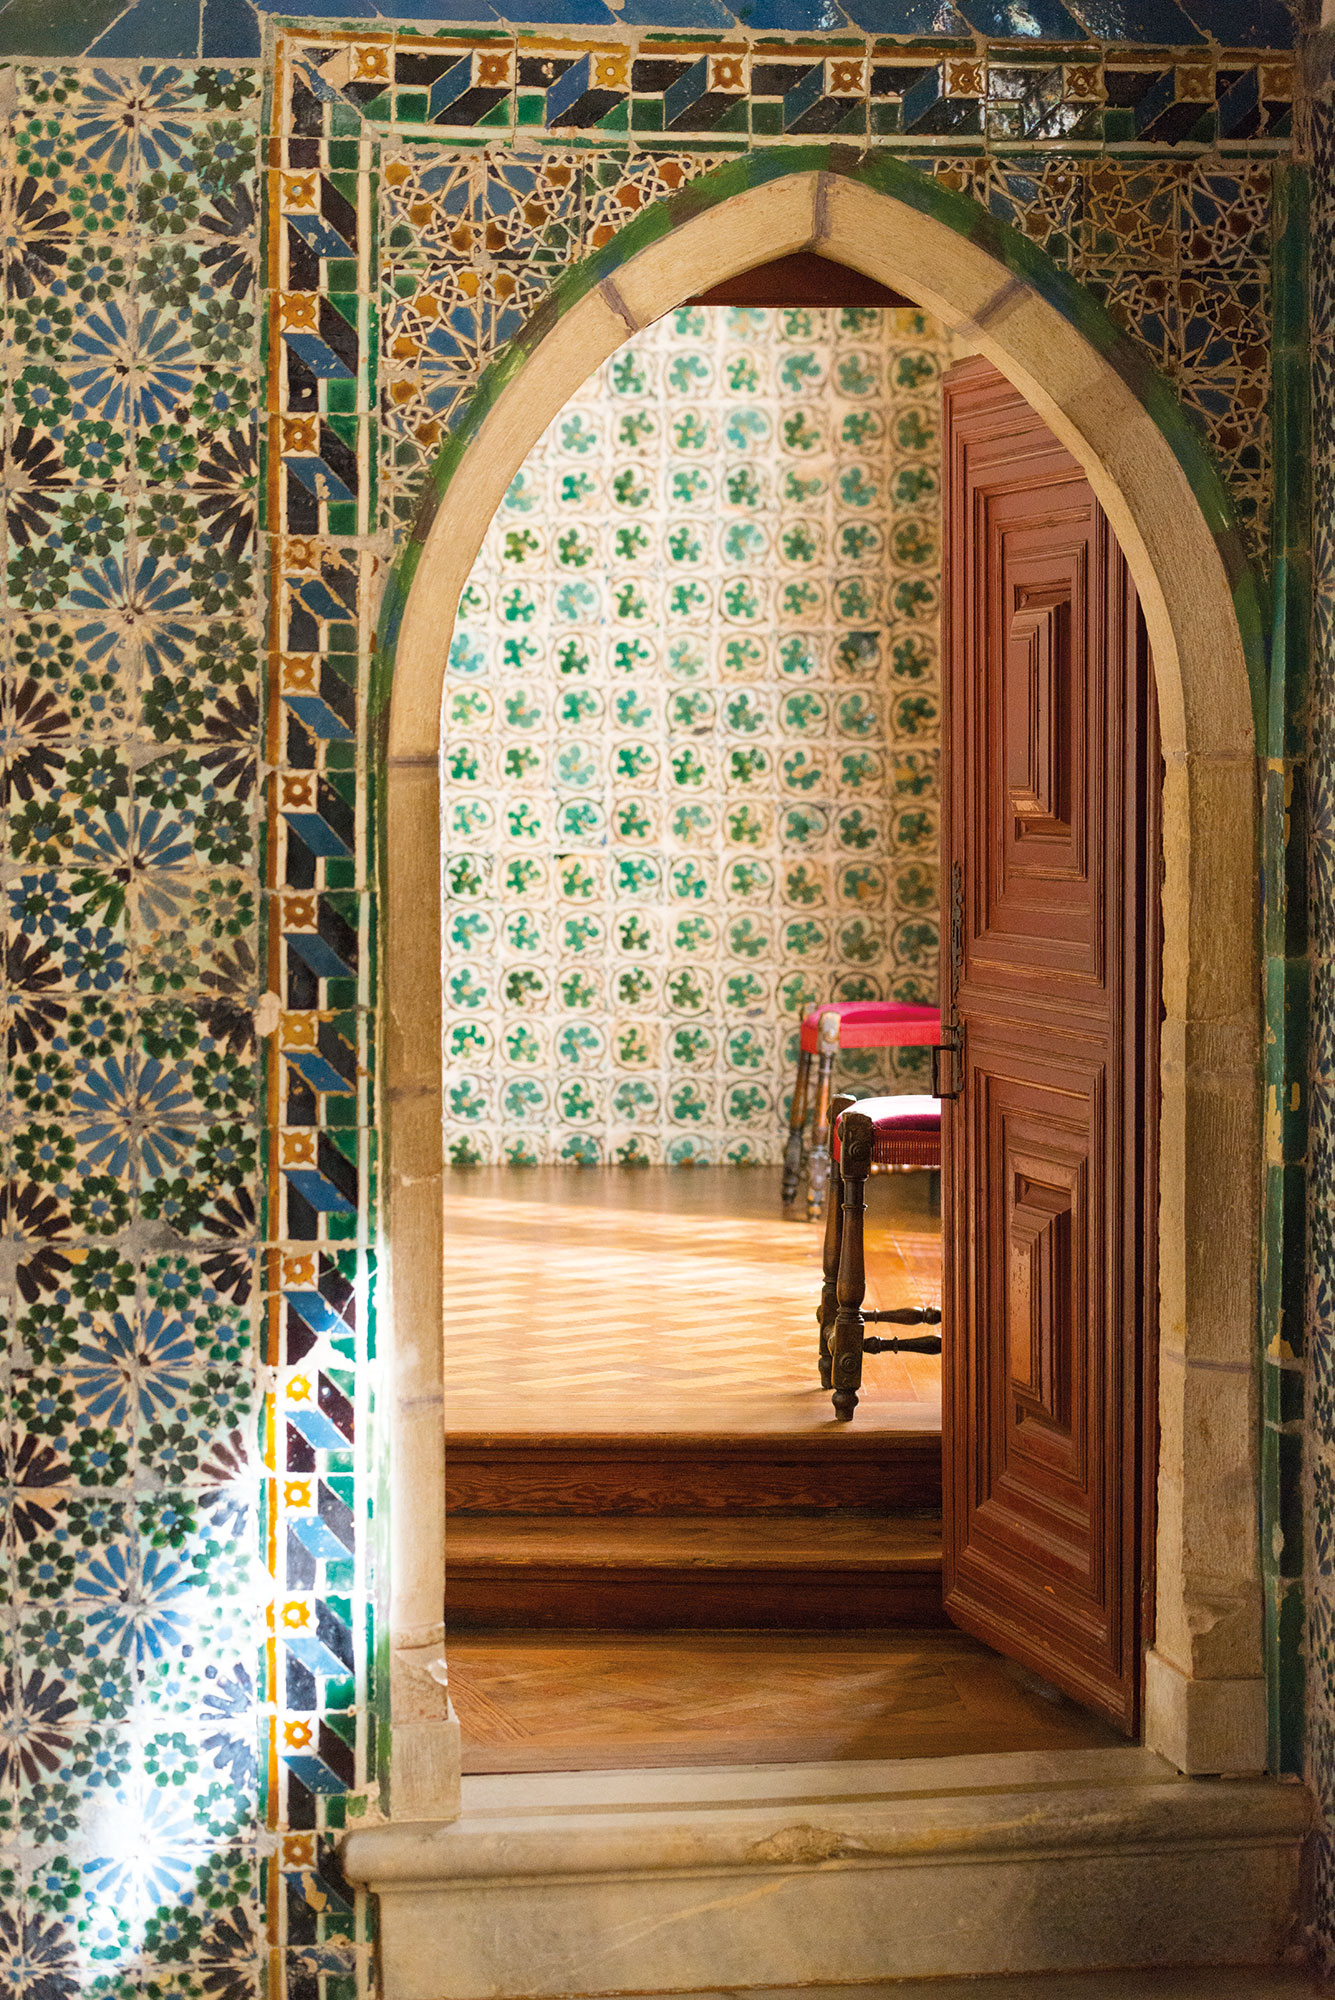 The colorful tiles inside Sintra's ornate palace